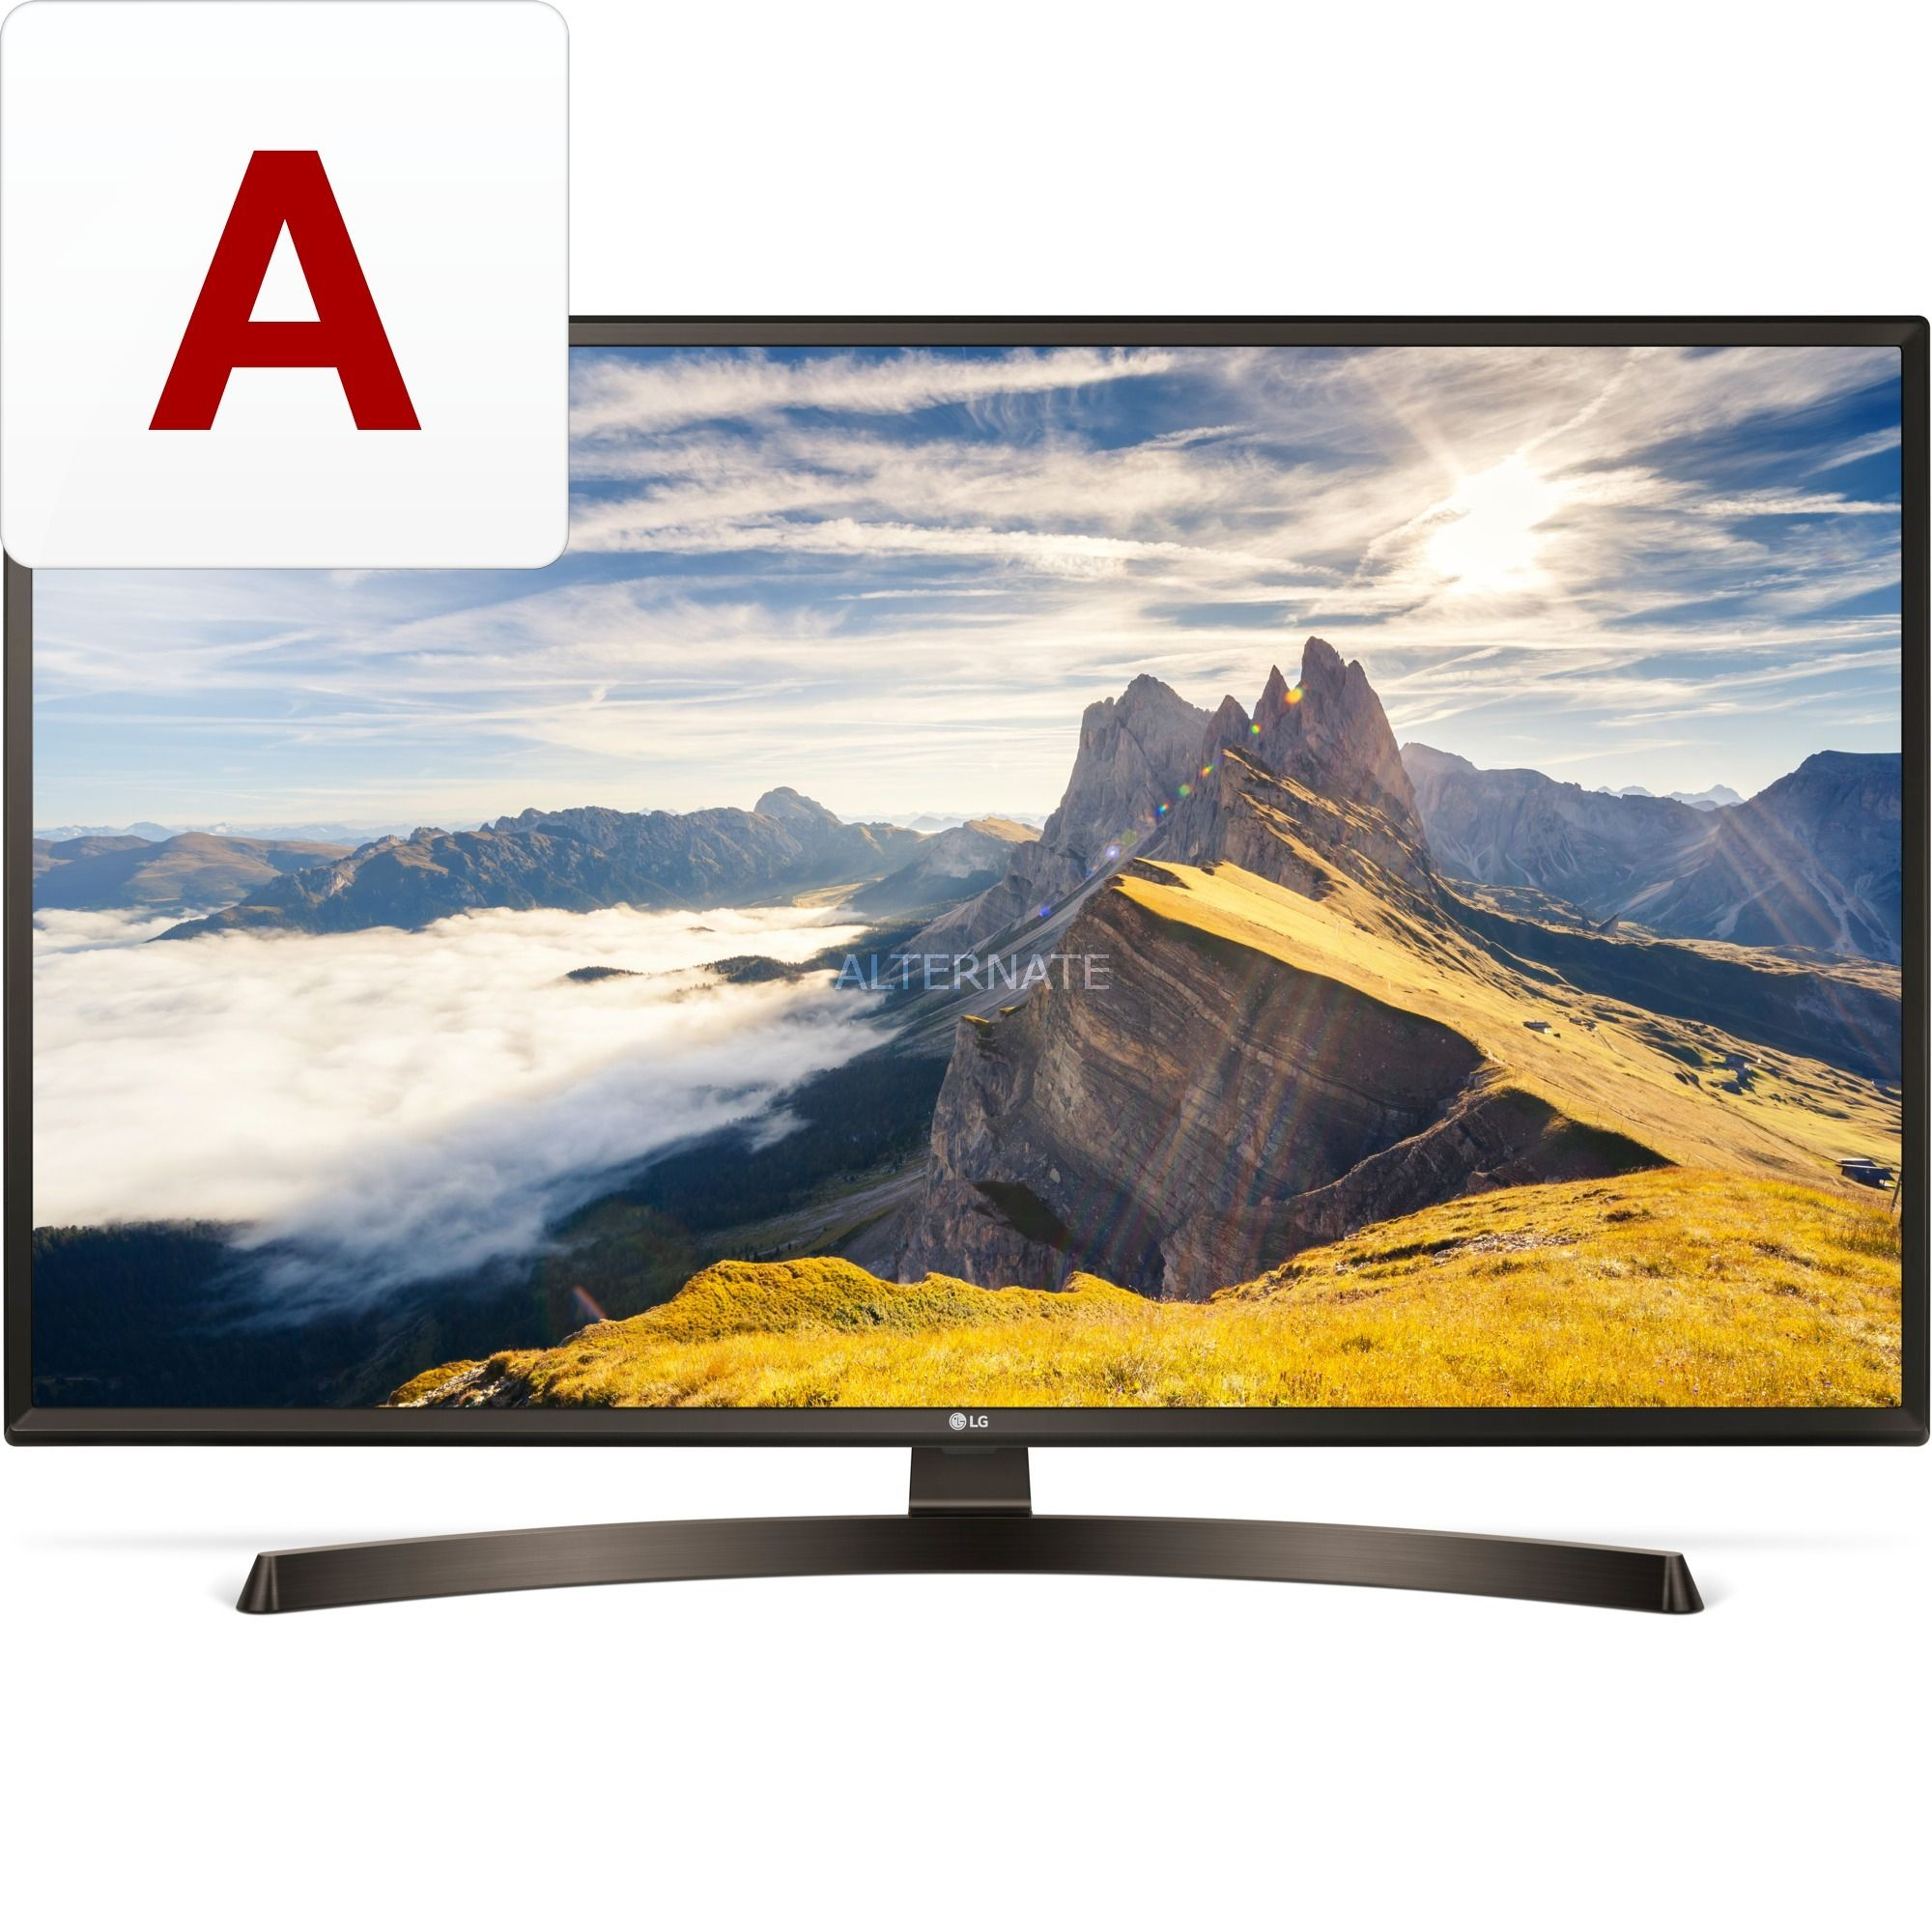 Ecran Tv 43uk6400plf Téléviseur Led Téléviseurs Pinterest Ds And Tvs